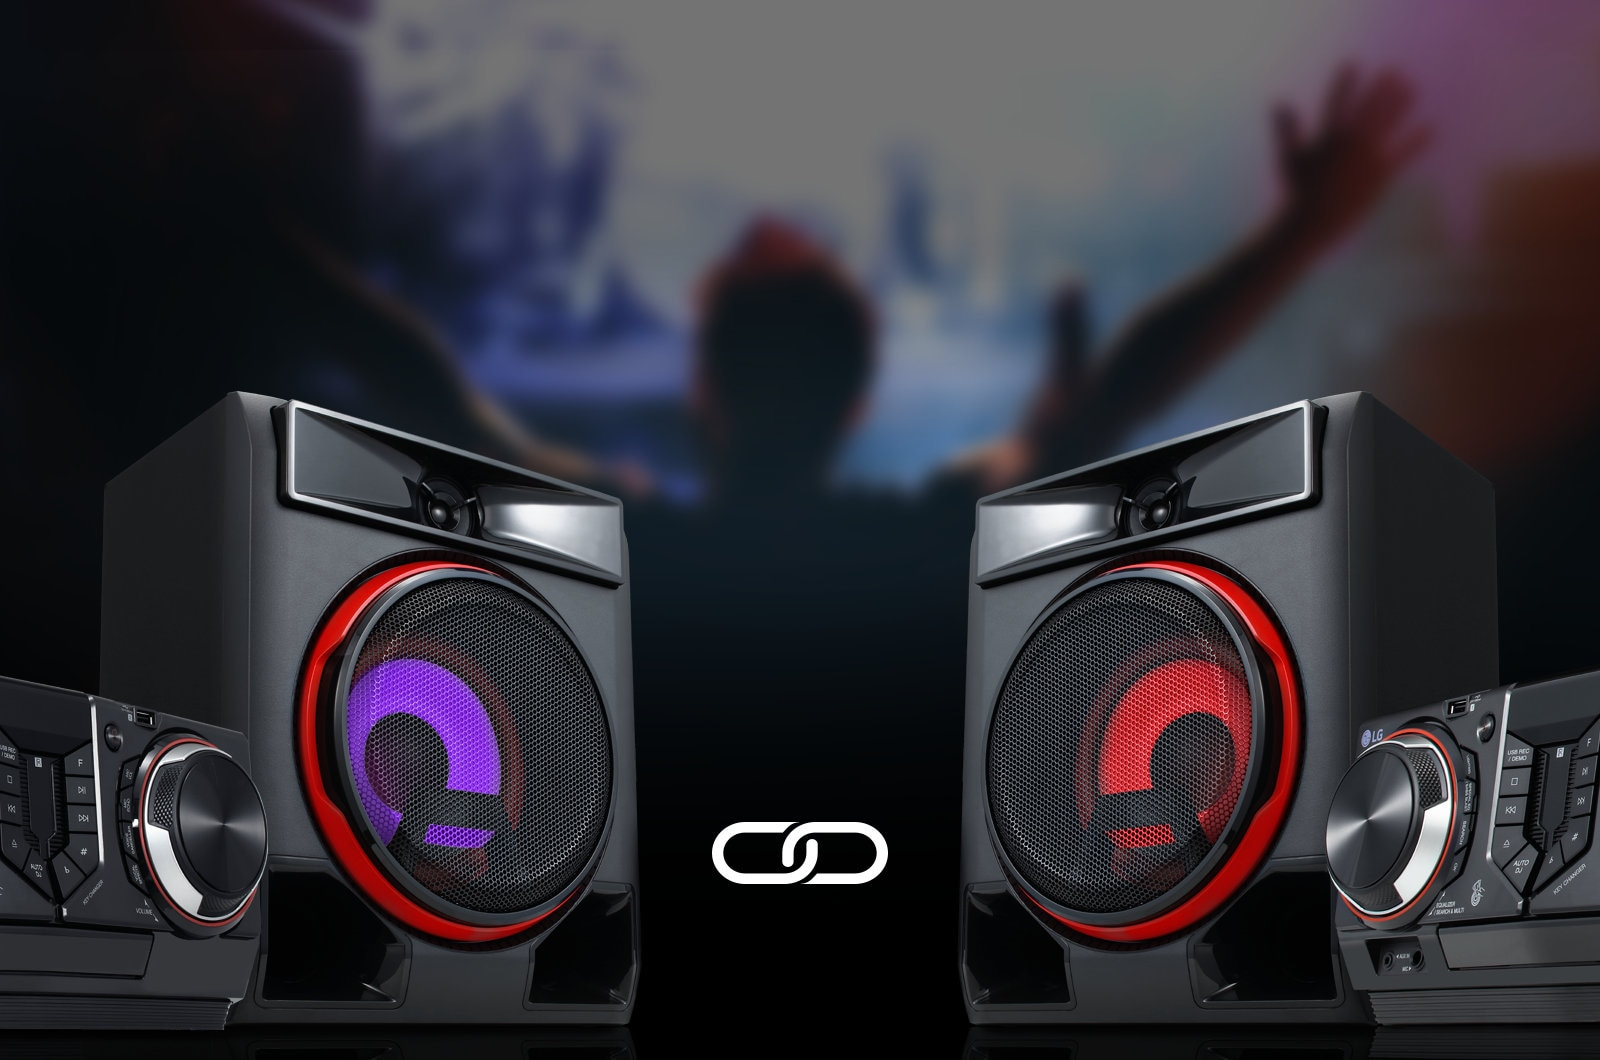 Double the Sound with Wireless Party Link1